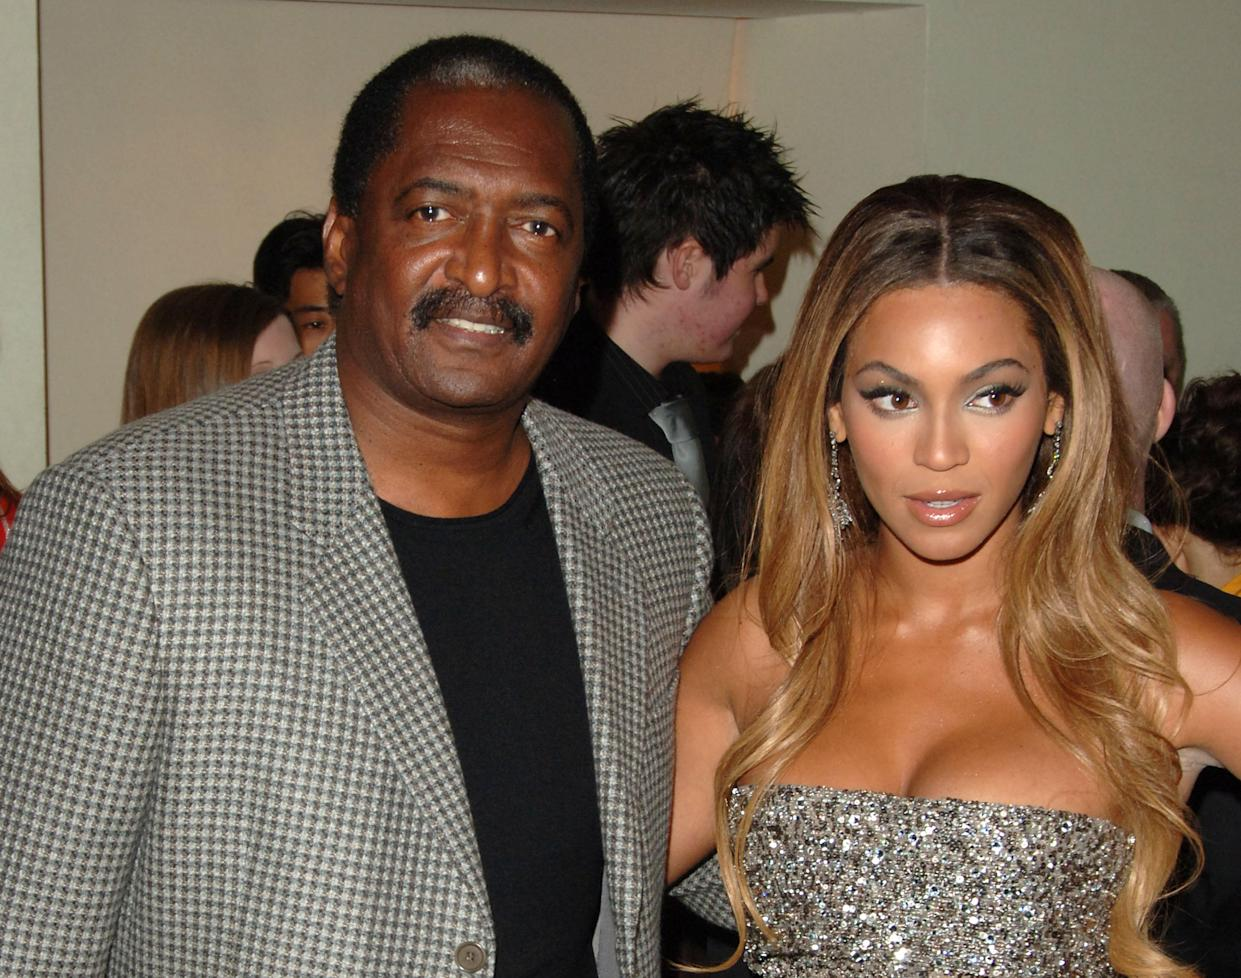 Beyonce and father Matthew Knowles attending the UK premiere of Dreamgirls in Leicester Square, London.   (Photo by Ian West - PA Images/PA Images via Getty Images)